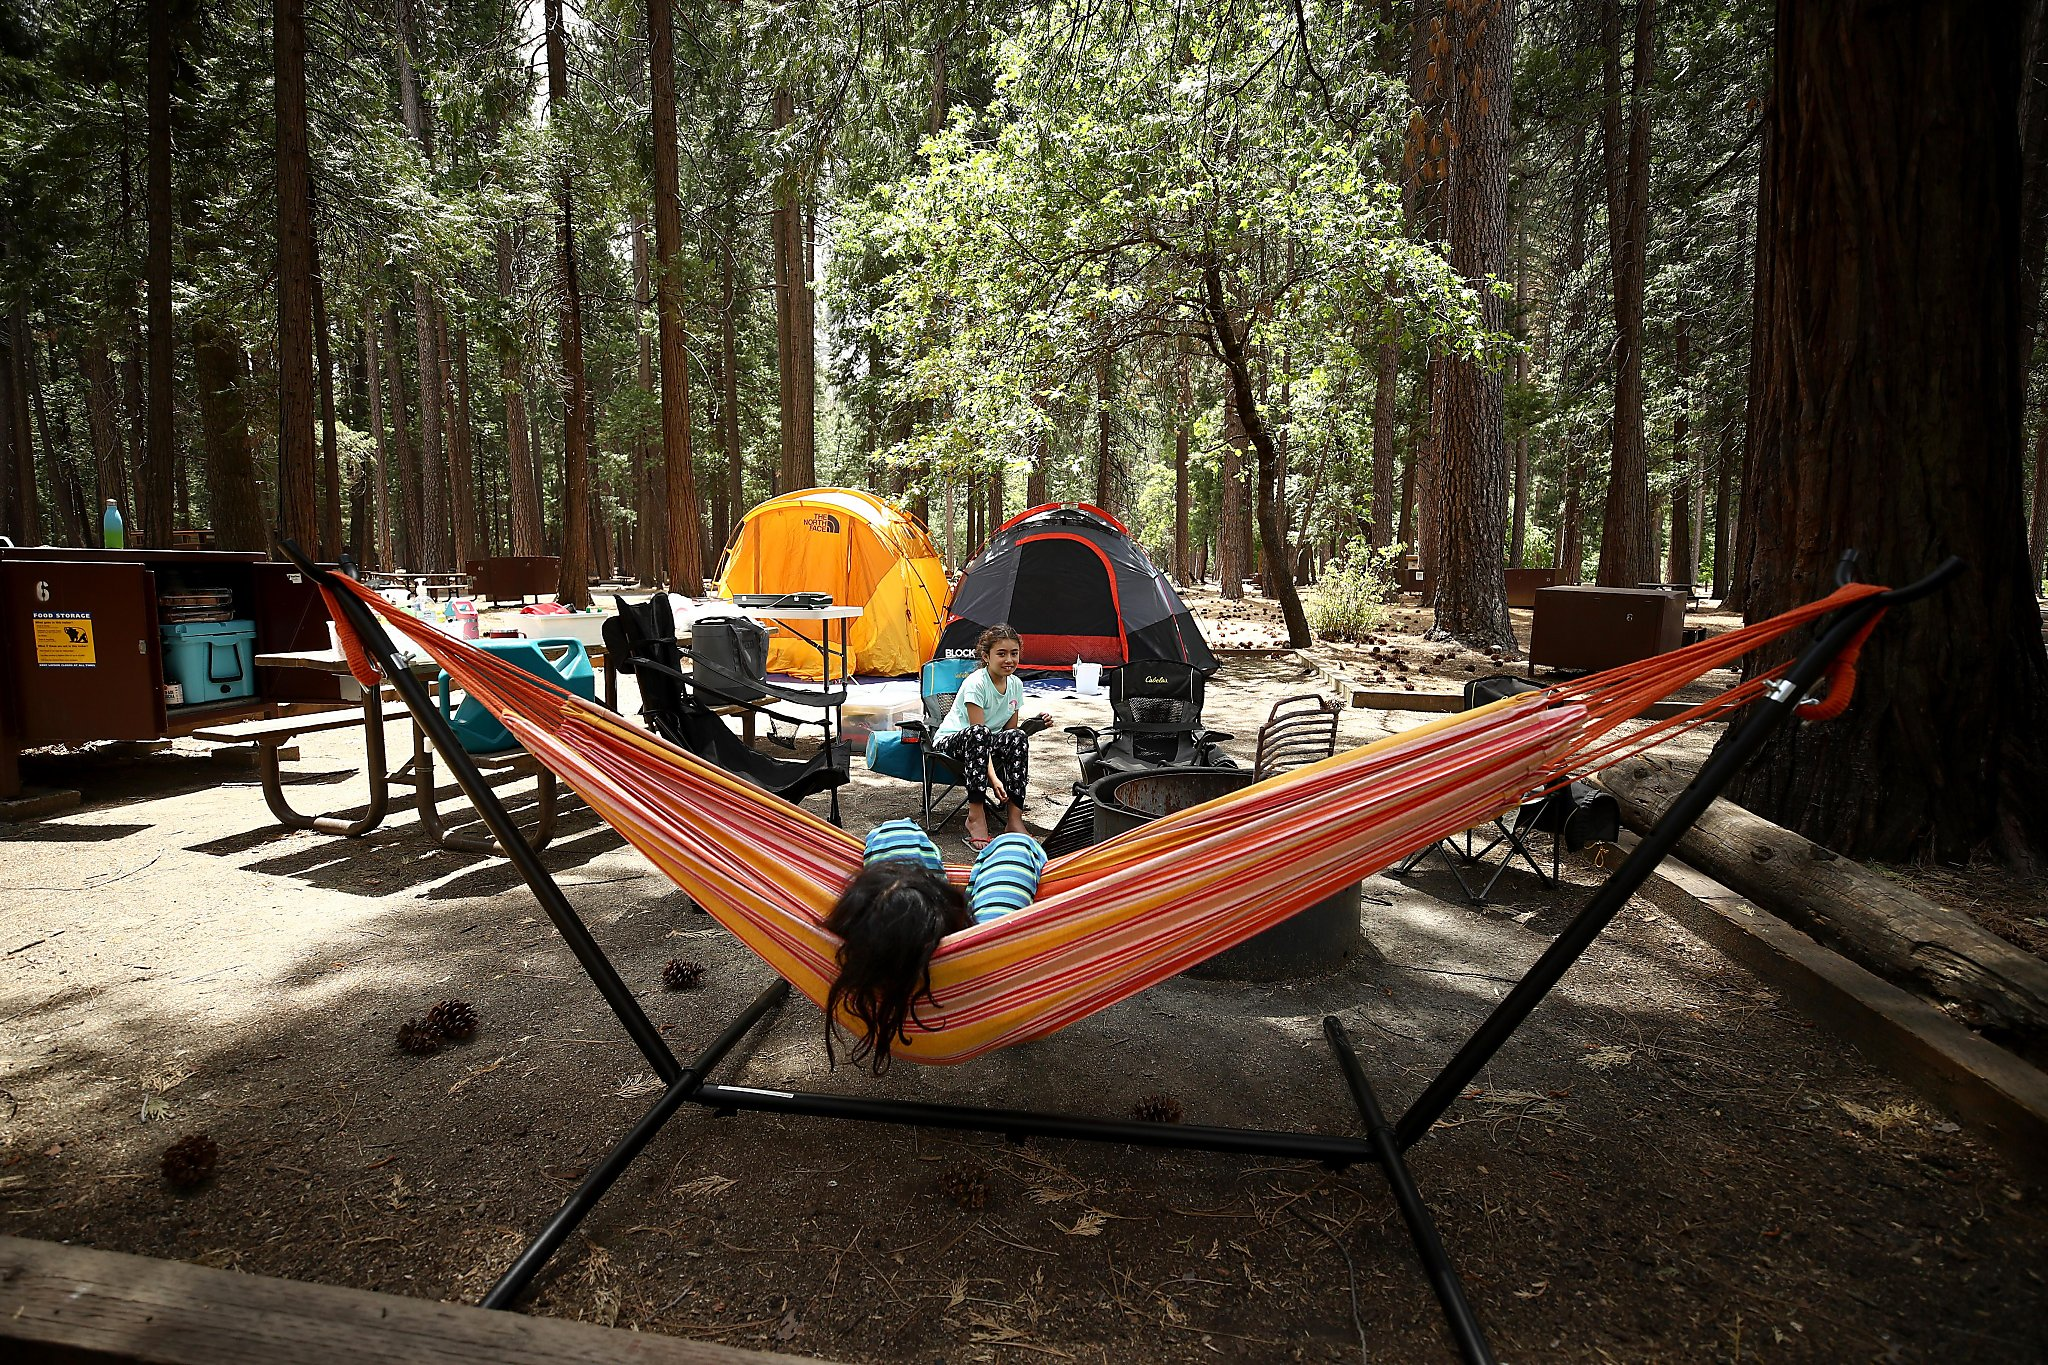 Want a camping reservation in California? Try this.